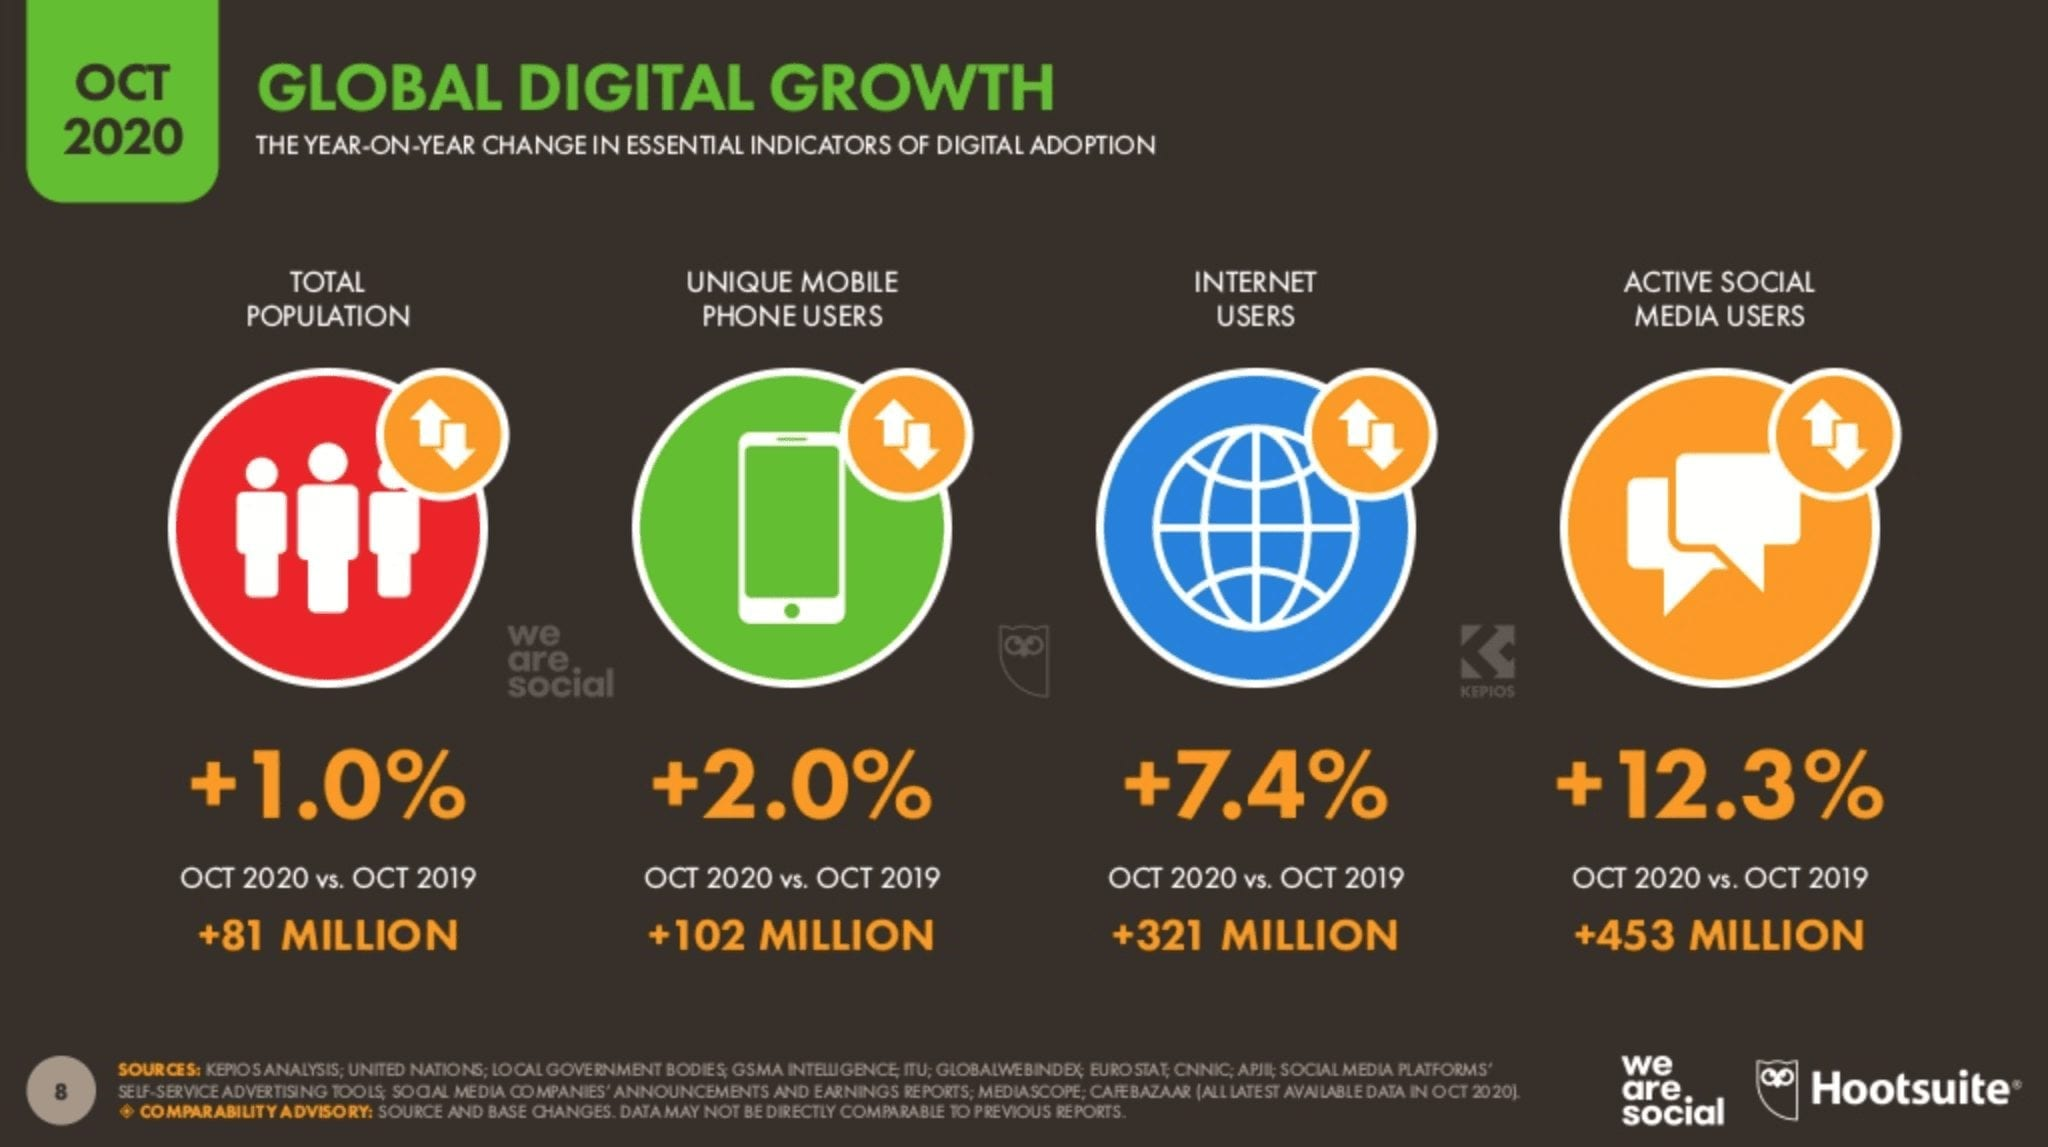 eNitiate   Bra Willy Seyama   Digital 2020 Report   7 Most Valuable Lessons   October Edition   Global Digital Growths   Nov 2020